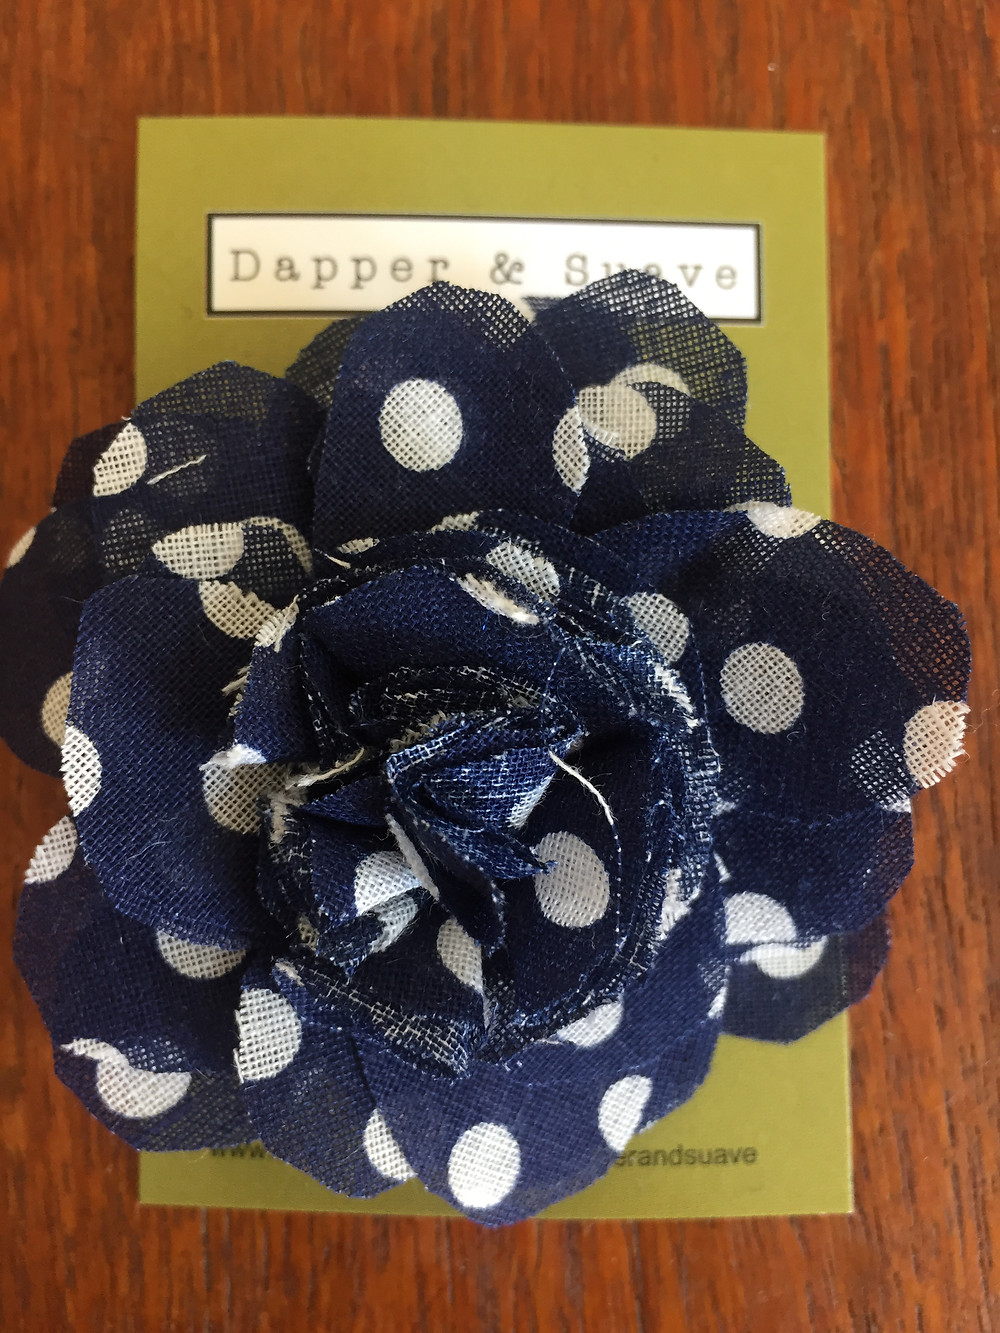 Dapper & Suave Navy Spot Lapel Pin